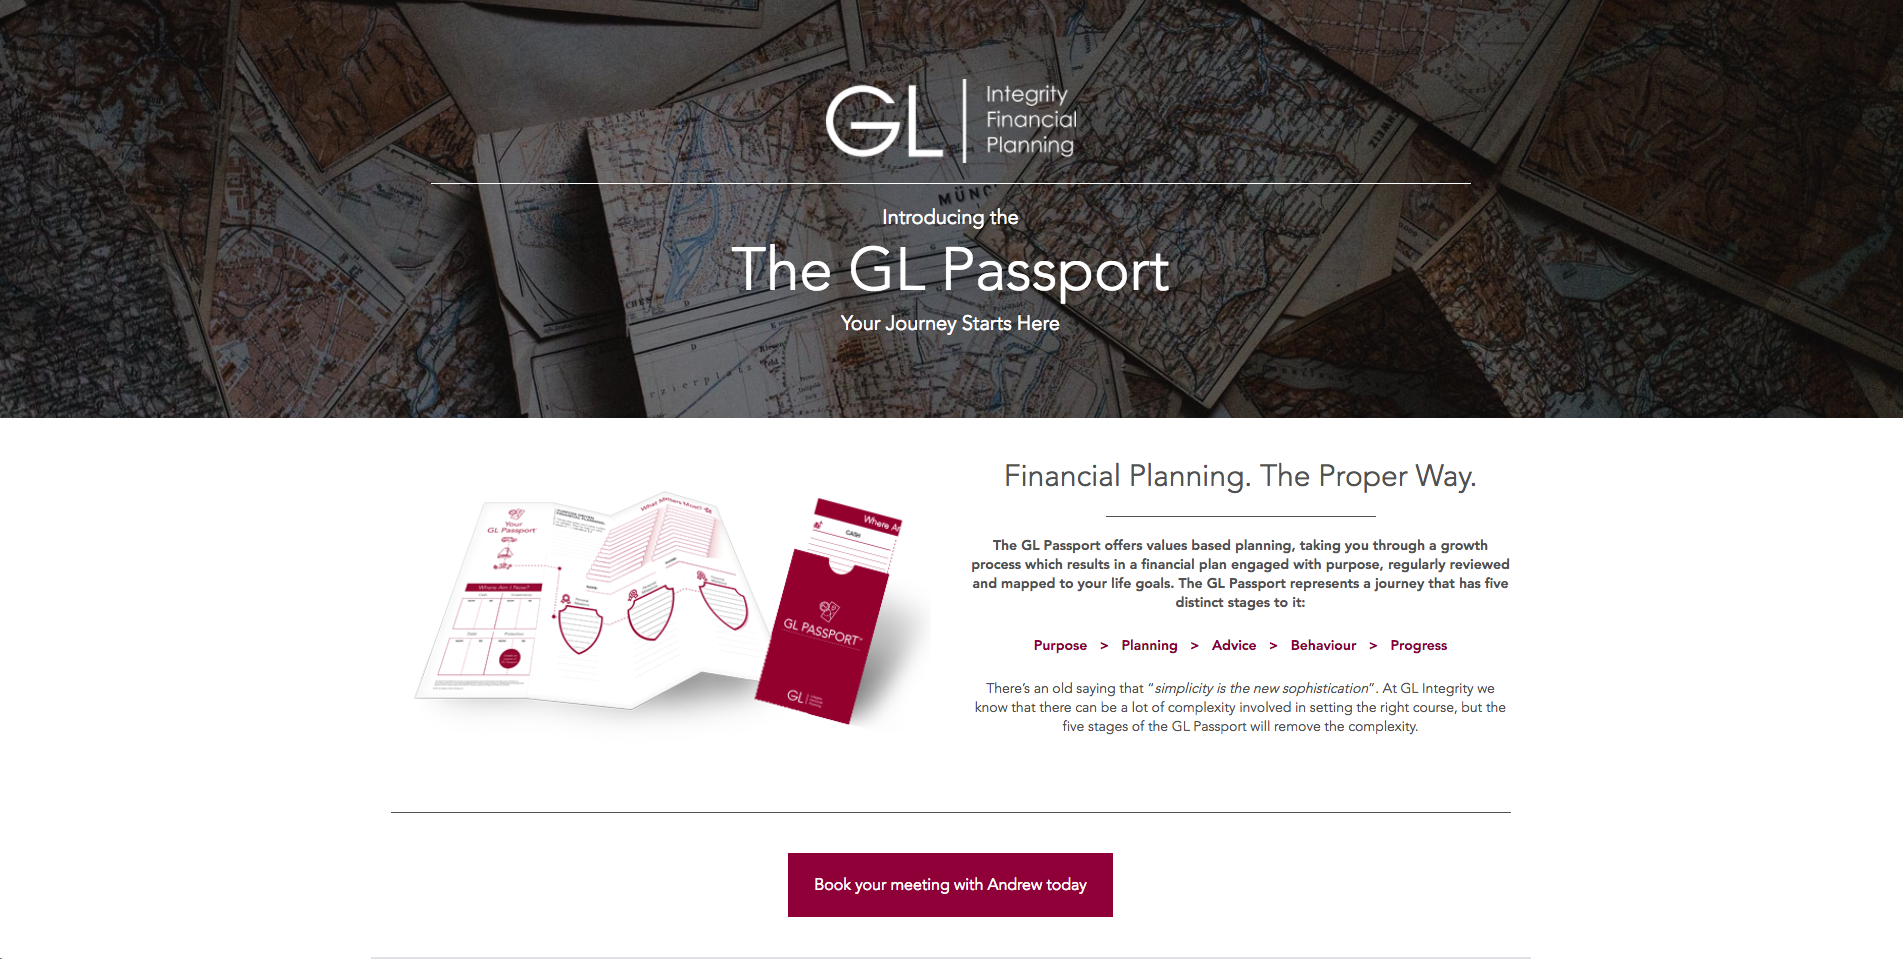 GL Passport Product Landing Page - How to Utilise Your Business Landing Page